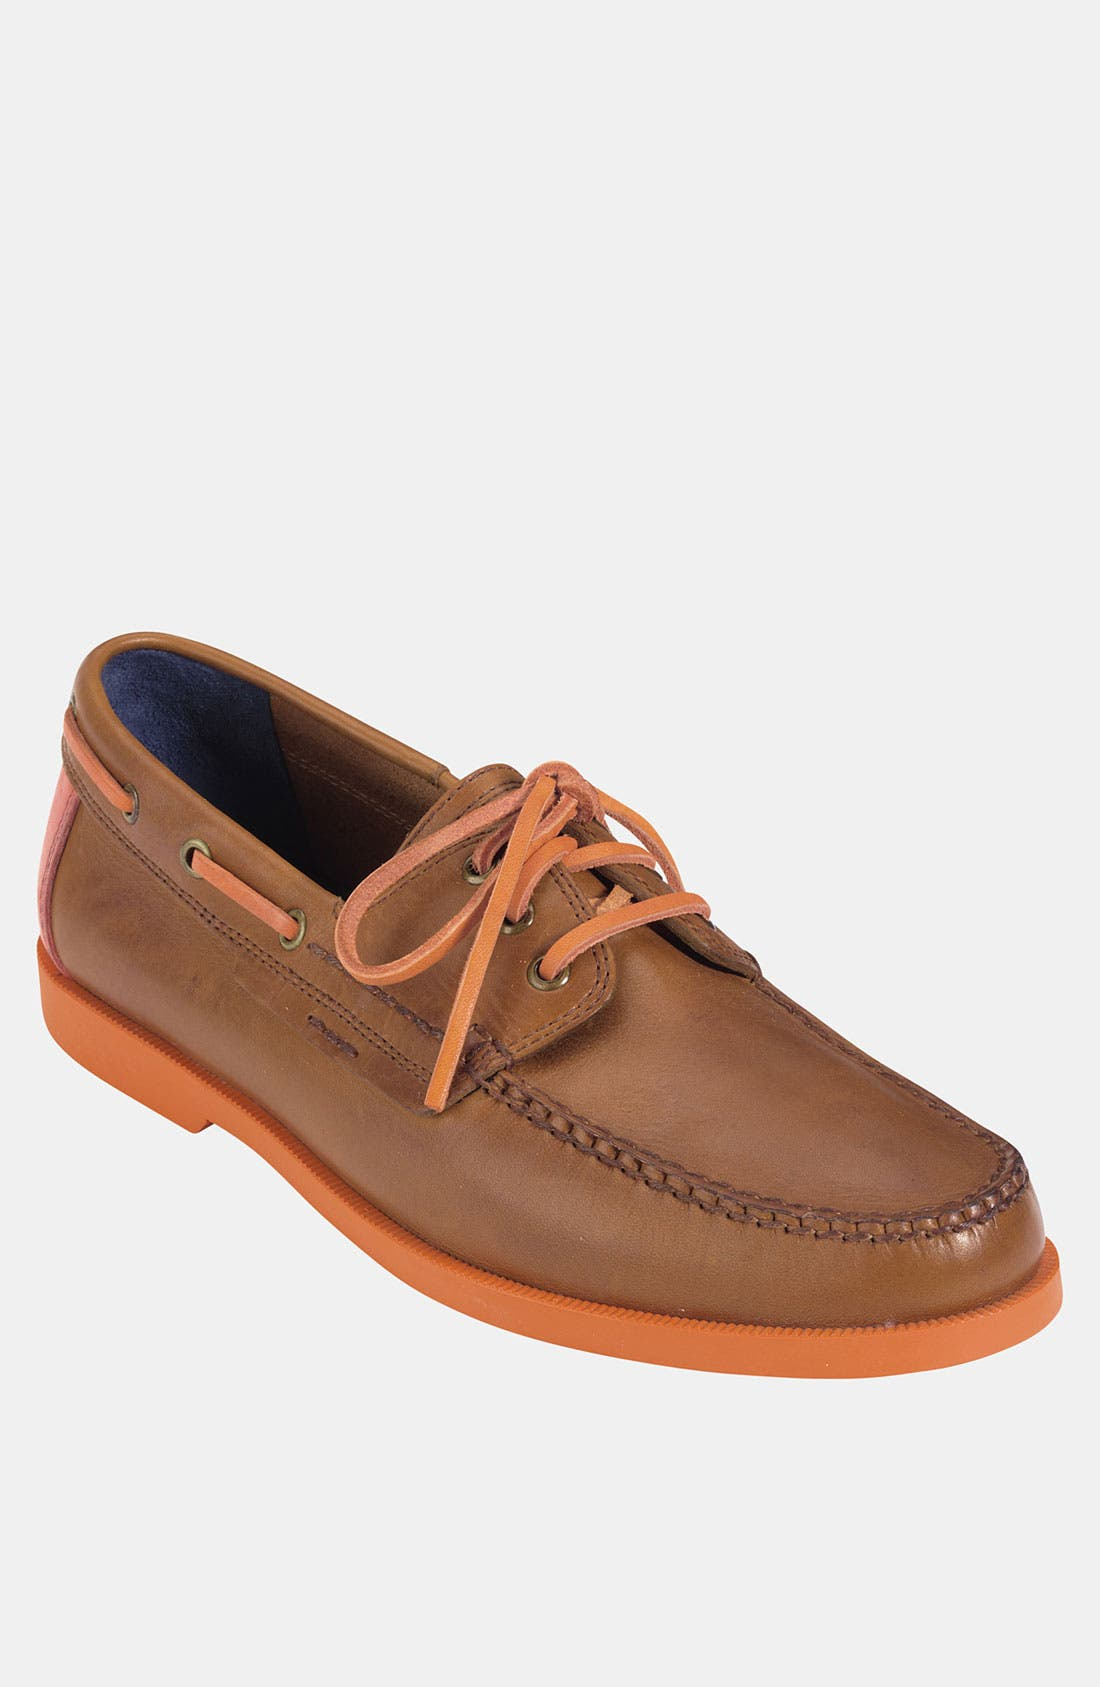 Alternate Image 1 Selected - Cole Haan 'Fire Island' Boat Shoe